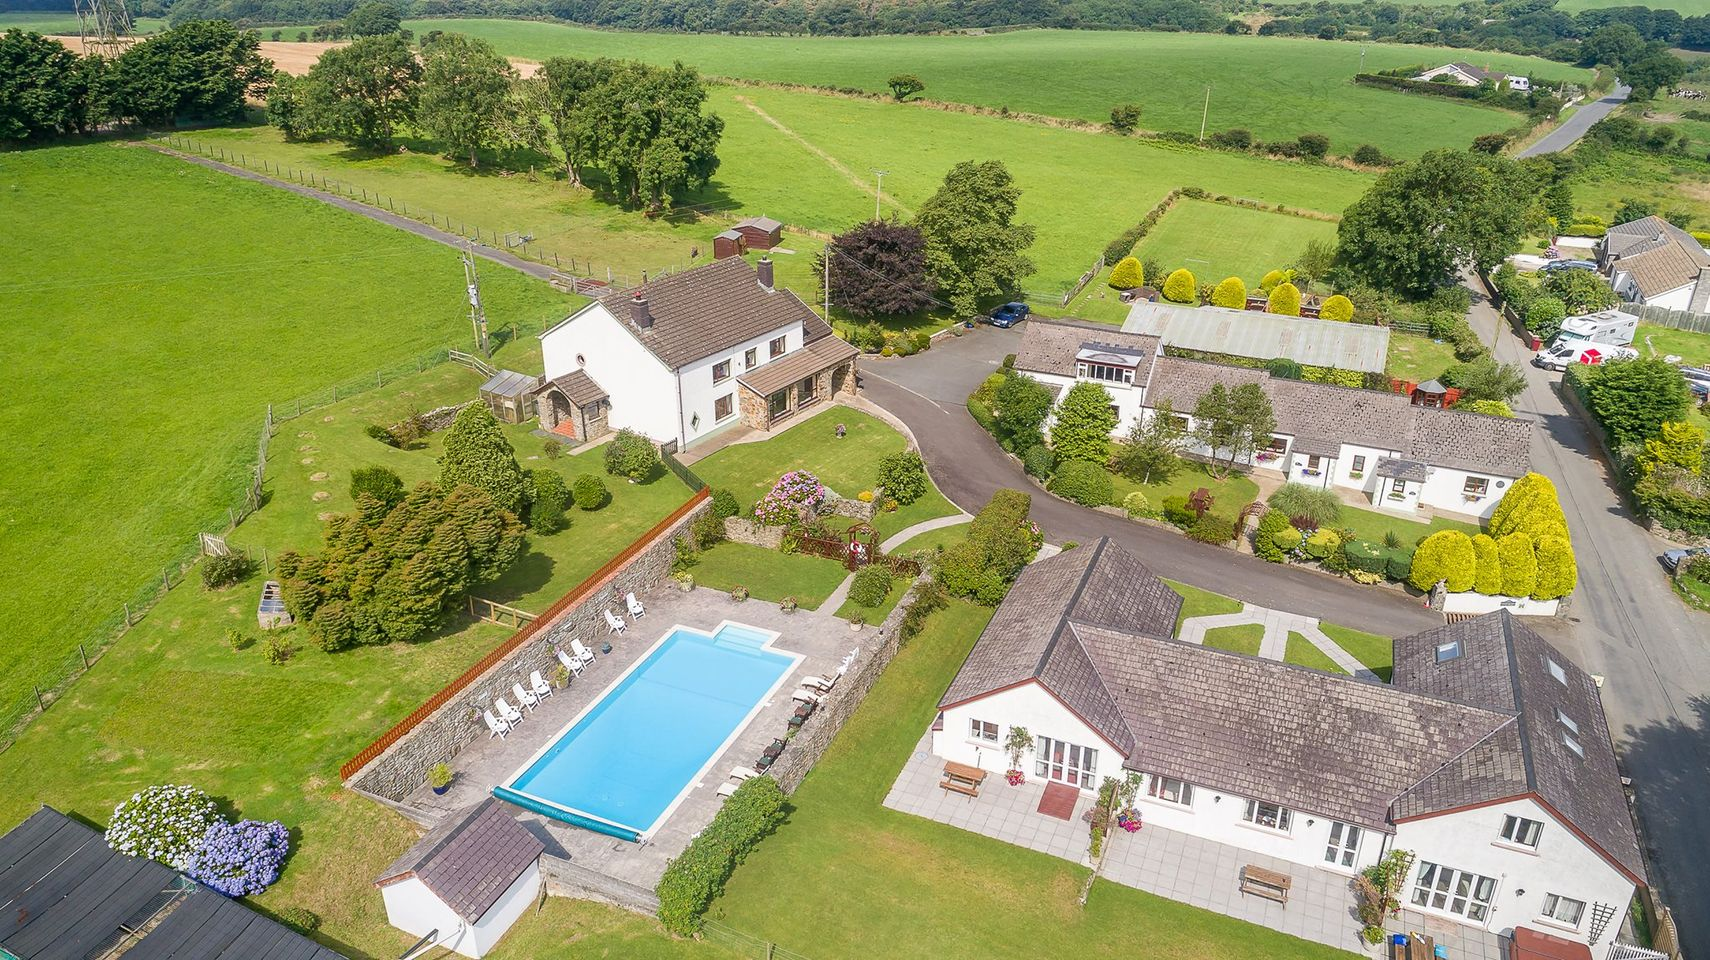 Trenewydd Farm Holiday Cottages